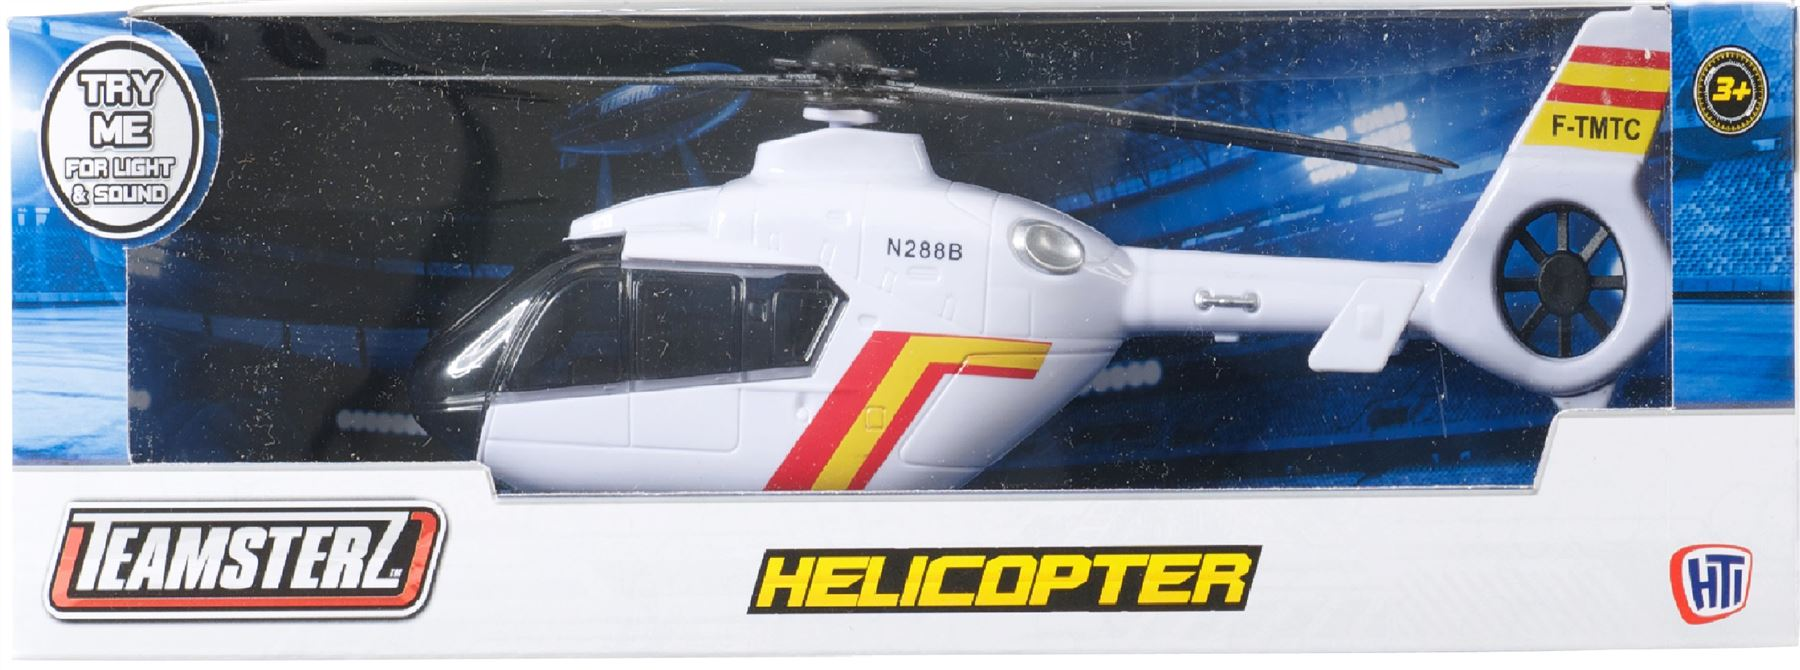 Teamsterz Helicopter With Light And Sound White